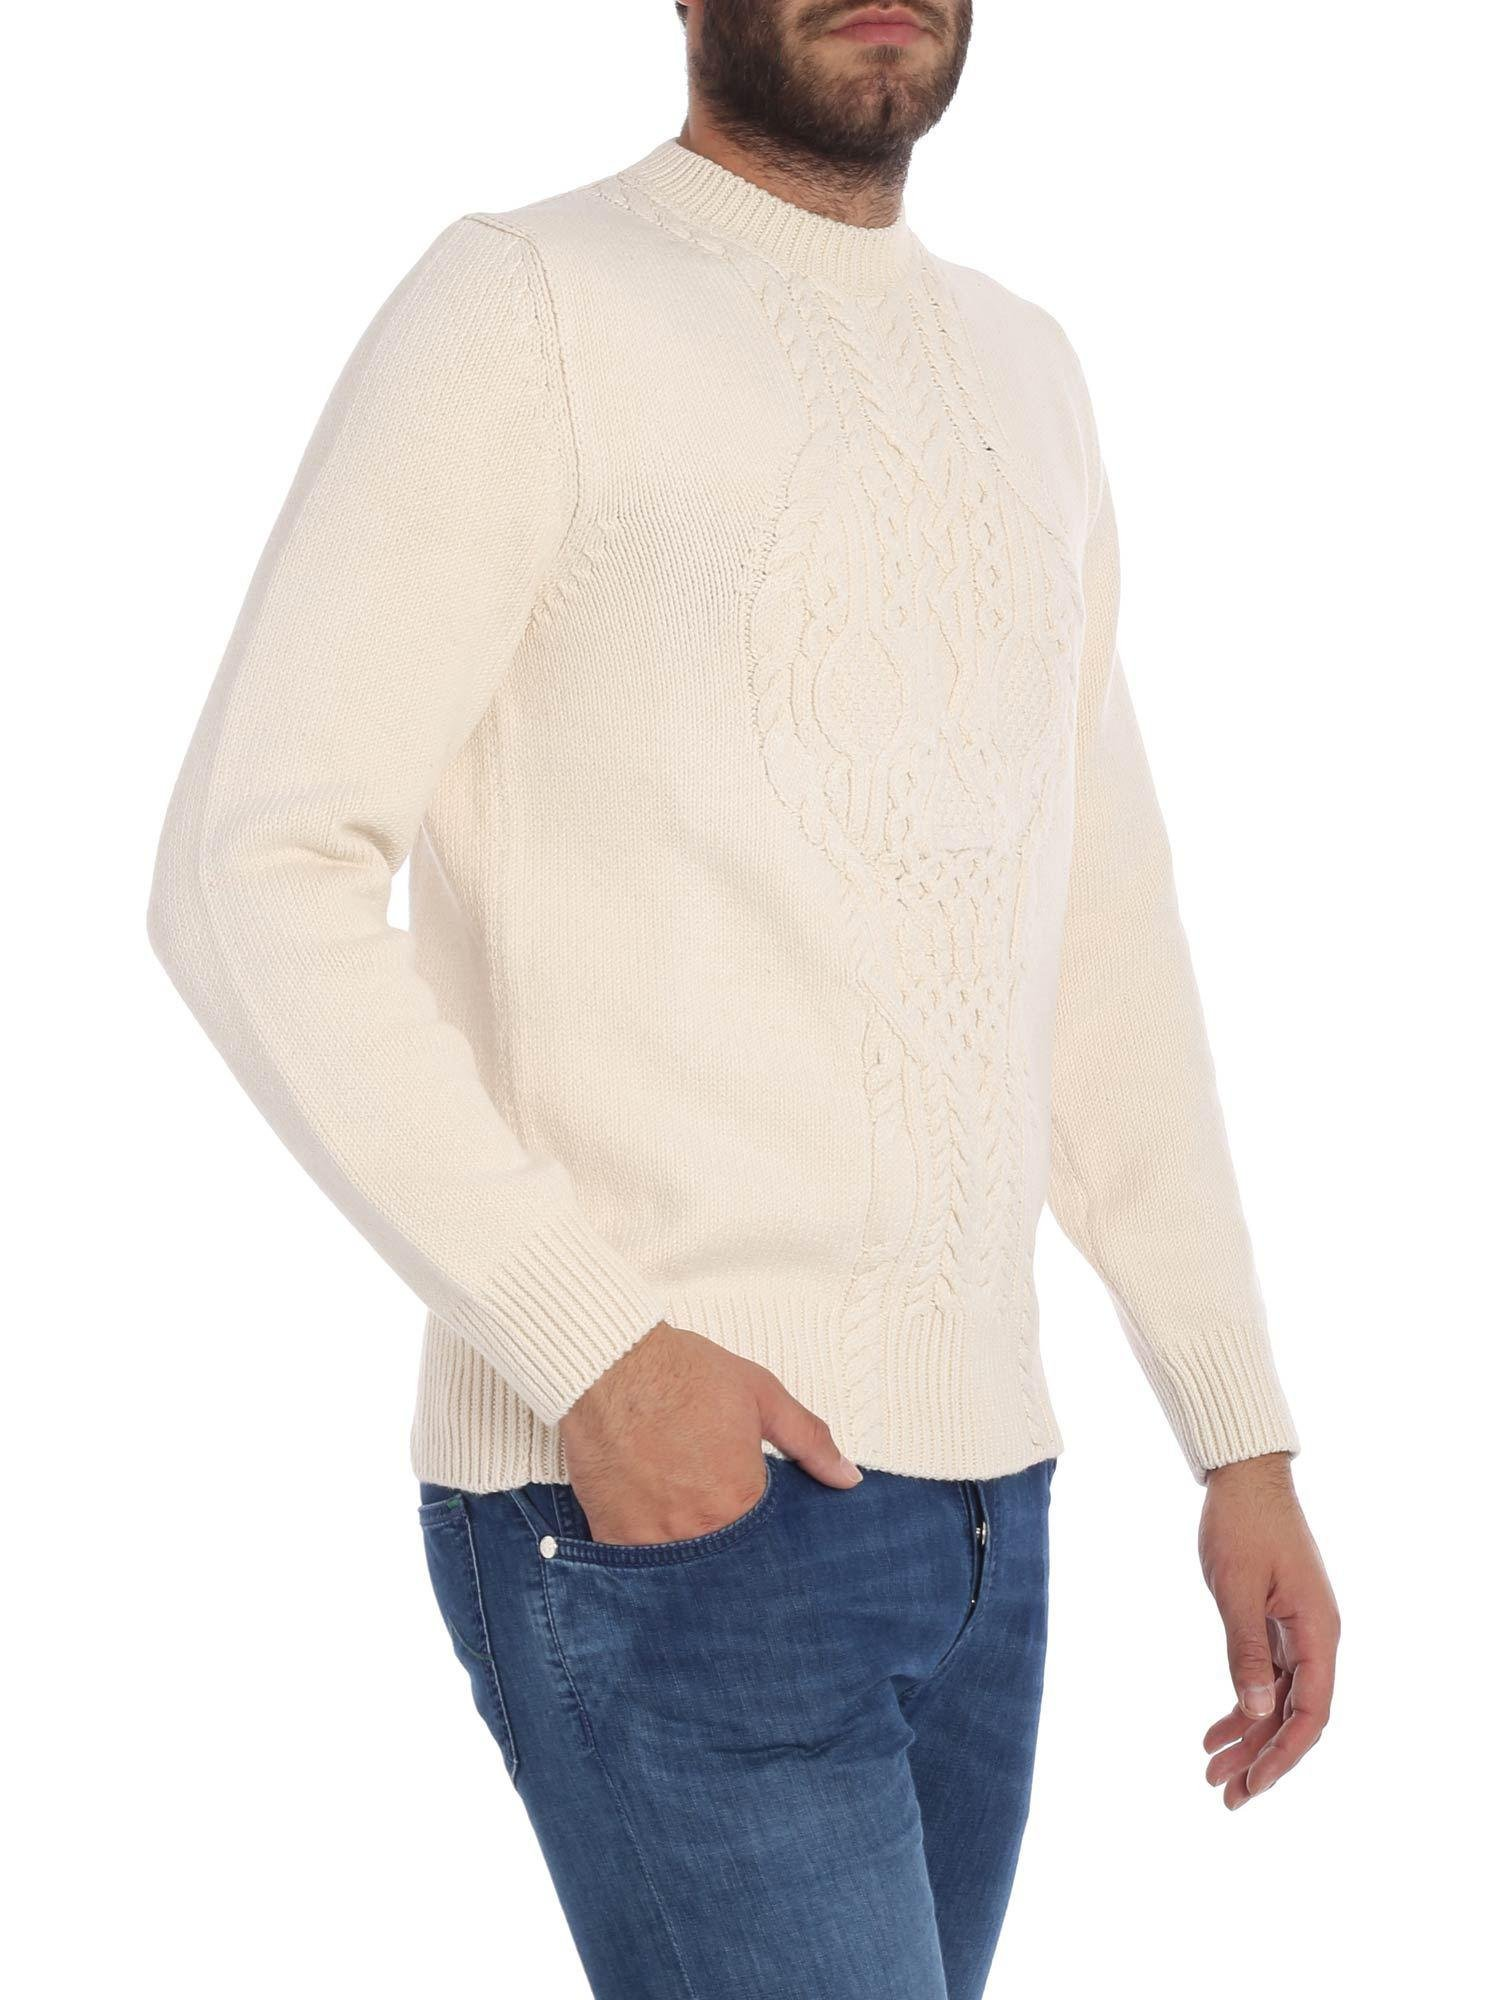 5a54d67b6885ee Alexander Mcqueen Ecru Crew Neck Sweater With Cable Knit Motif in Natural  for Men - Lyst